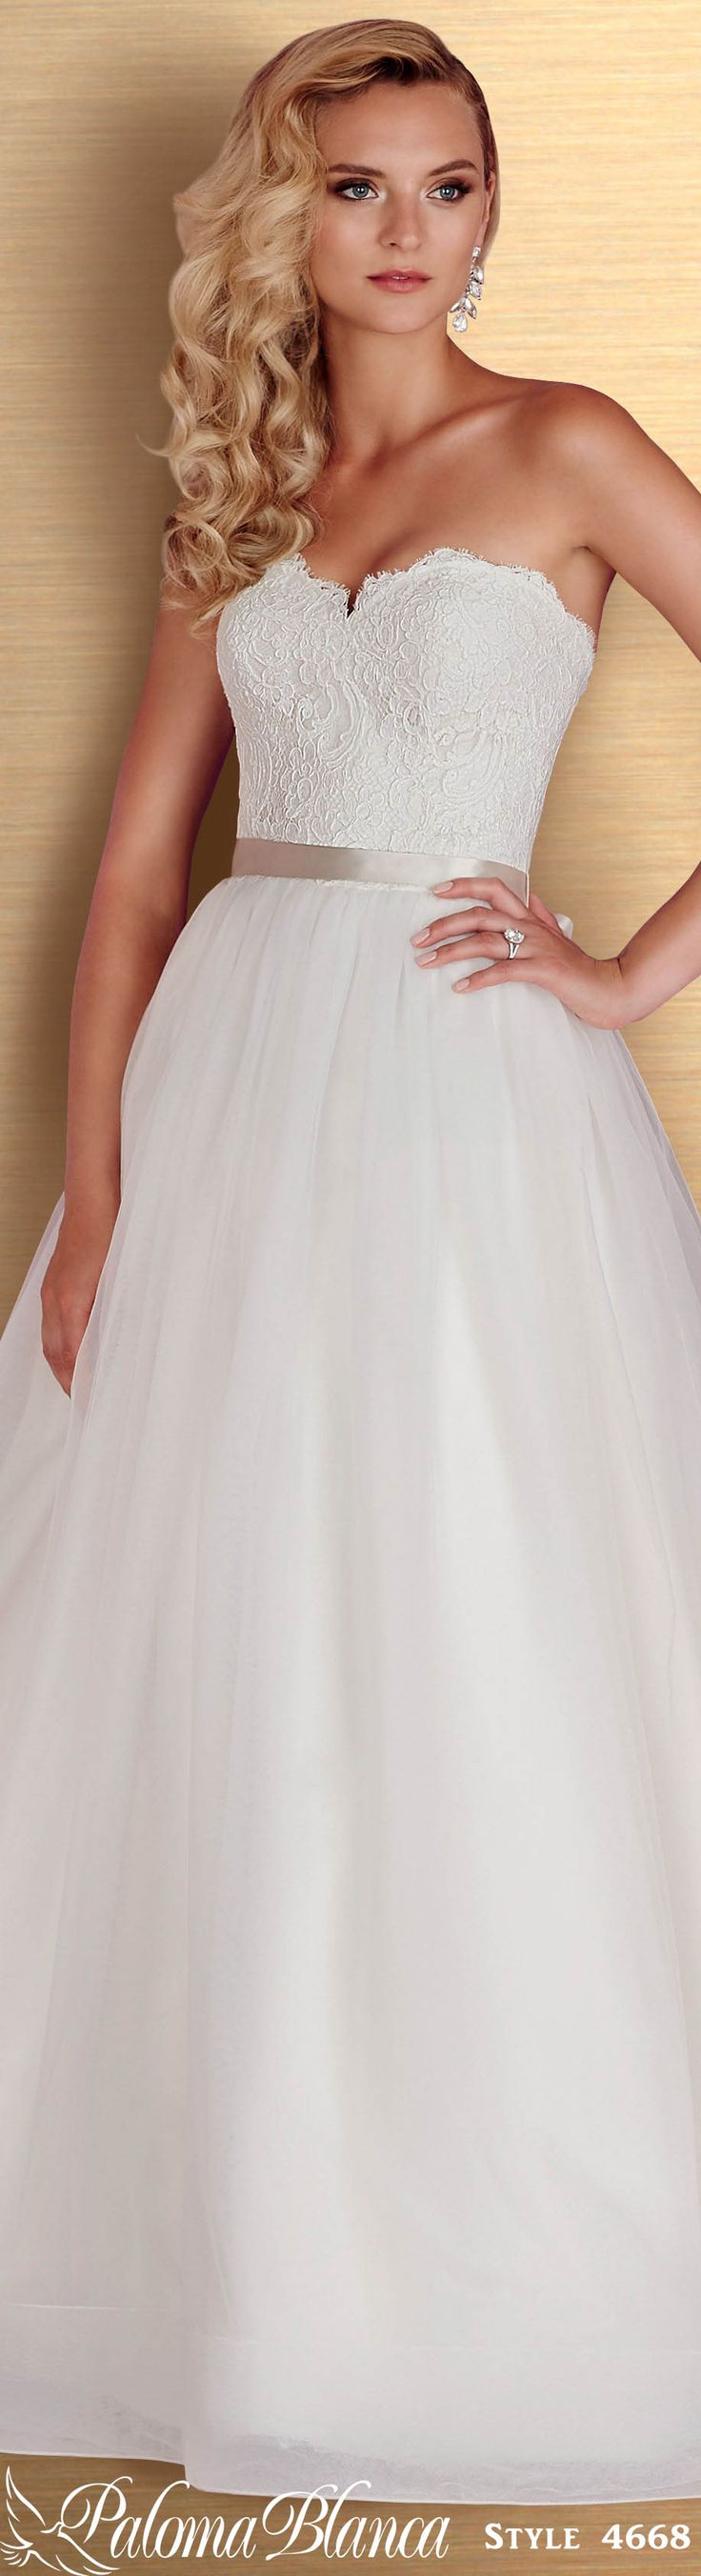 18 best Ball Gowns | Paloma Blanca images on Pinterest | Short ...